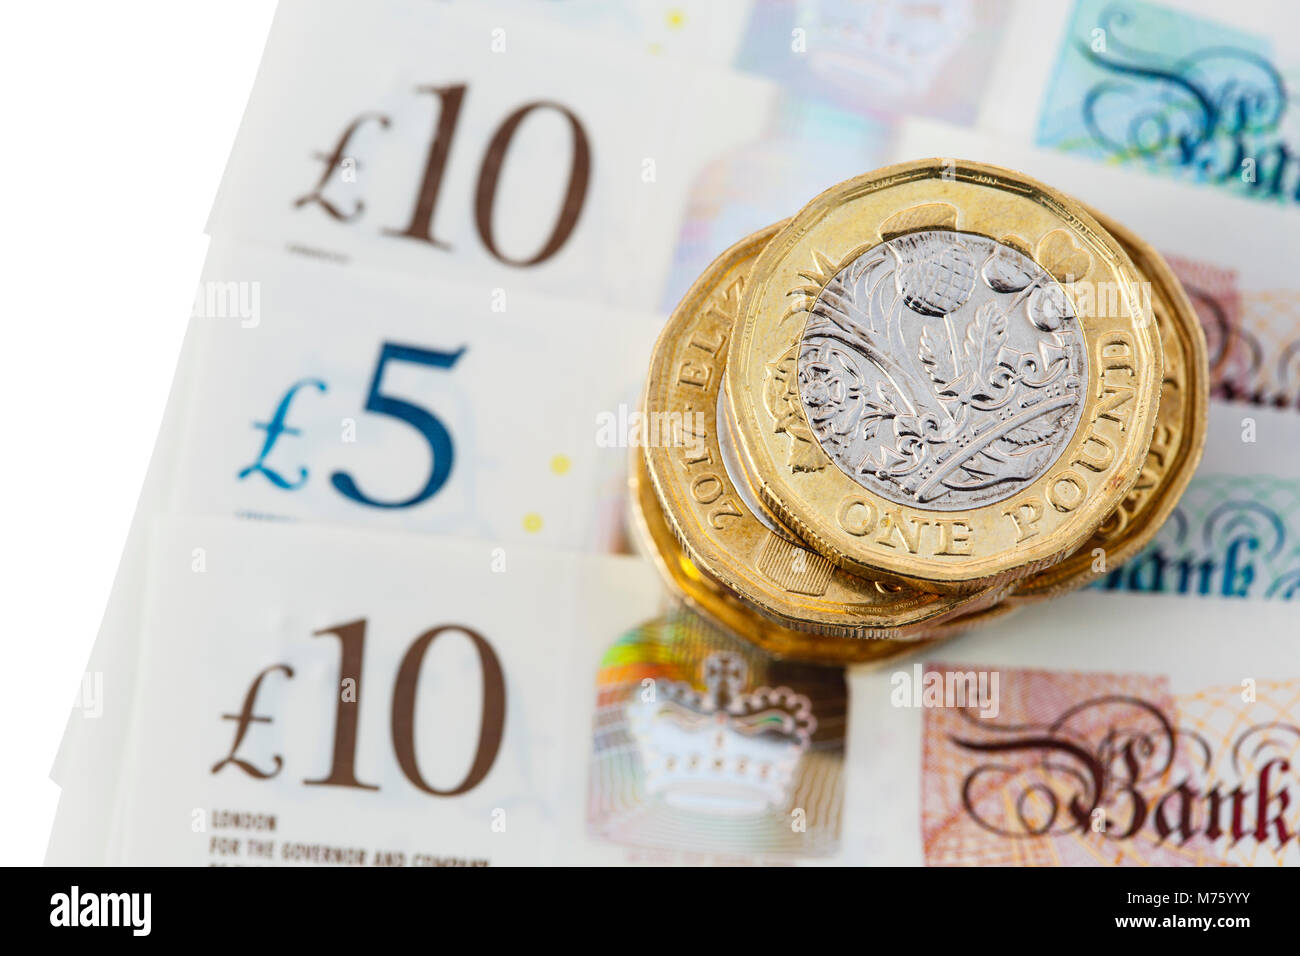 Pile of British 12 sided one pound coins money sterling pounds on new polymer £10 and £5 notes GBP close - Stock Image